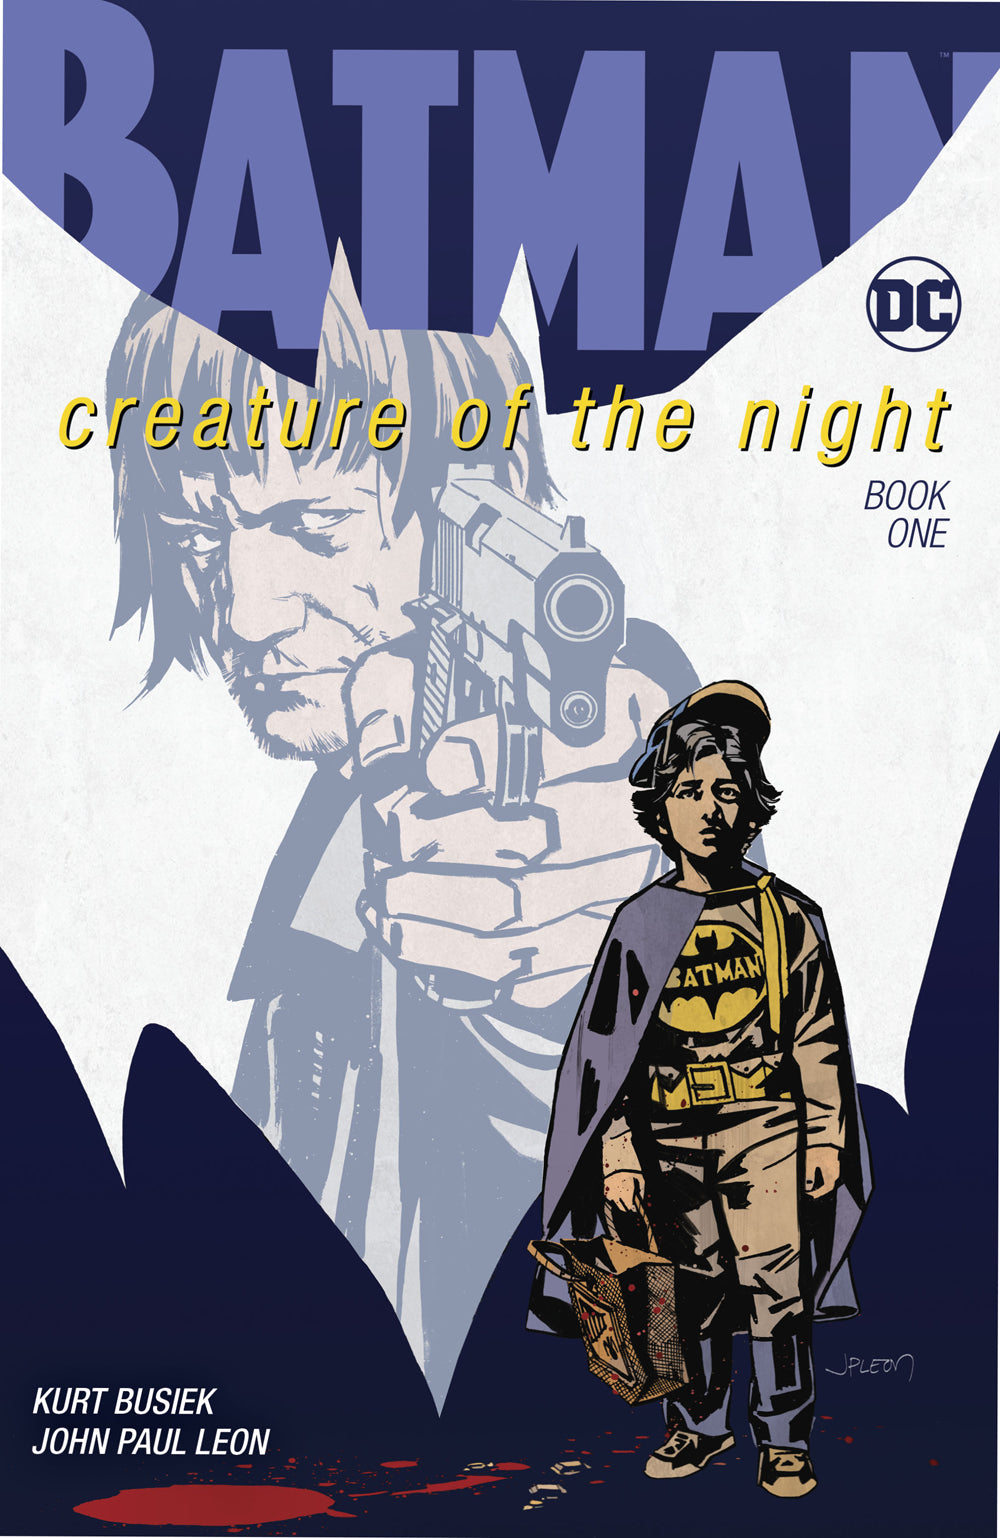 BATMAN CREATURE OF THE NIGHT #1 (OF 4)